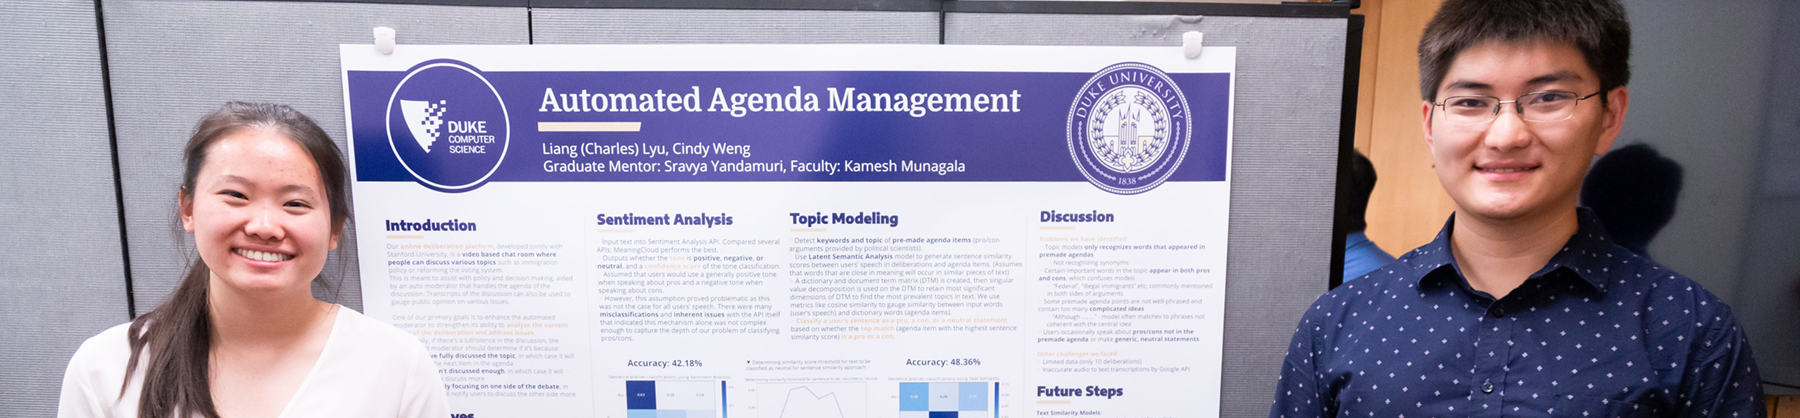 Ugrad Summer 2019 Research-Auto-Agenda Mgt Project Poster